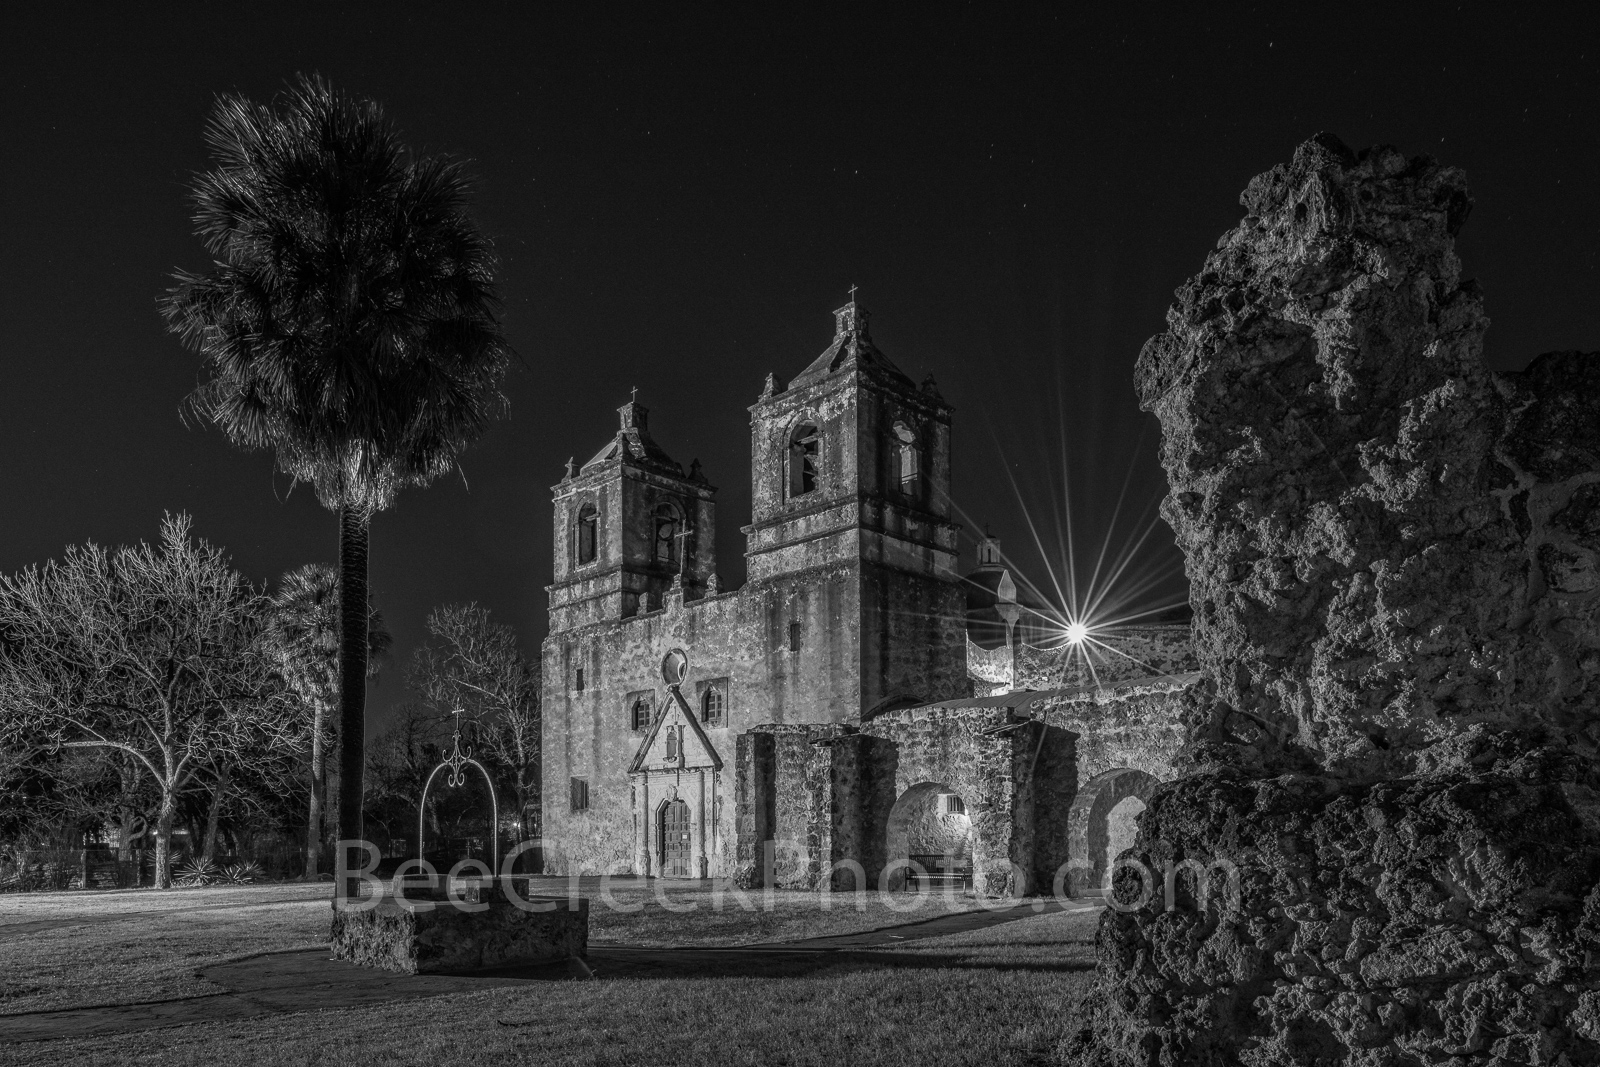 concepción, mission concepción, san antonio, night,black and whtie, bw,  spanish missions, indians, landmark, historic, downtown, skies, texians, mexicans, texas missions, national historic landmarks,, photo